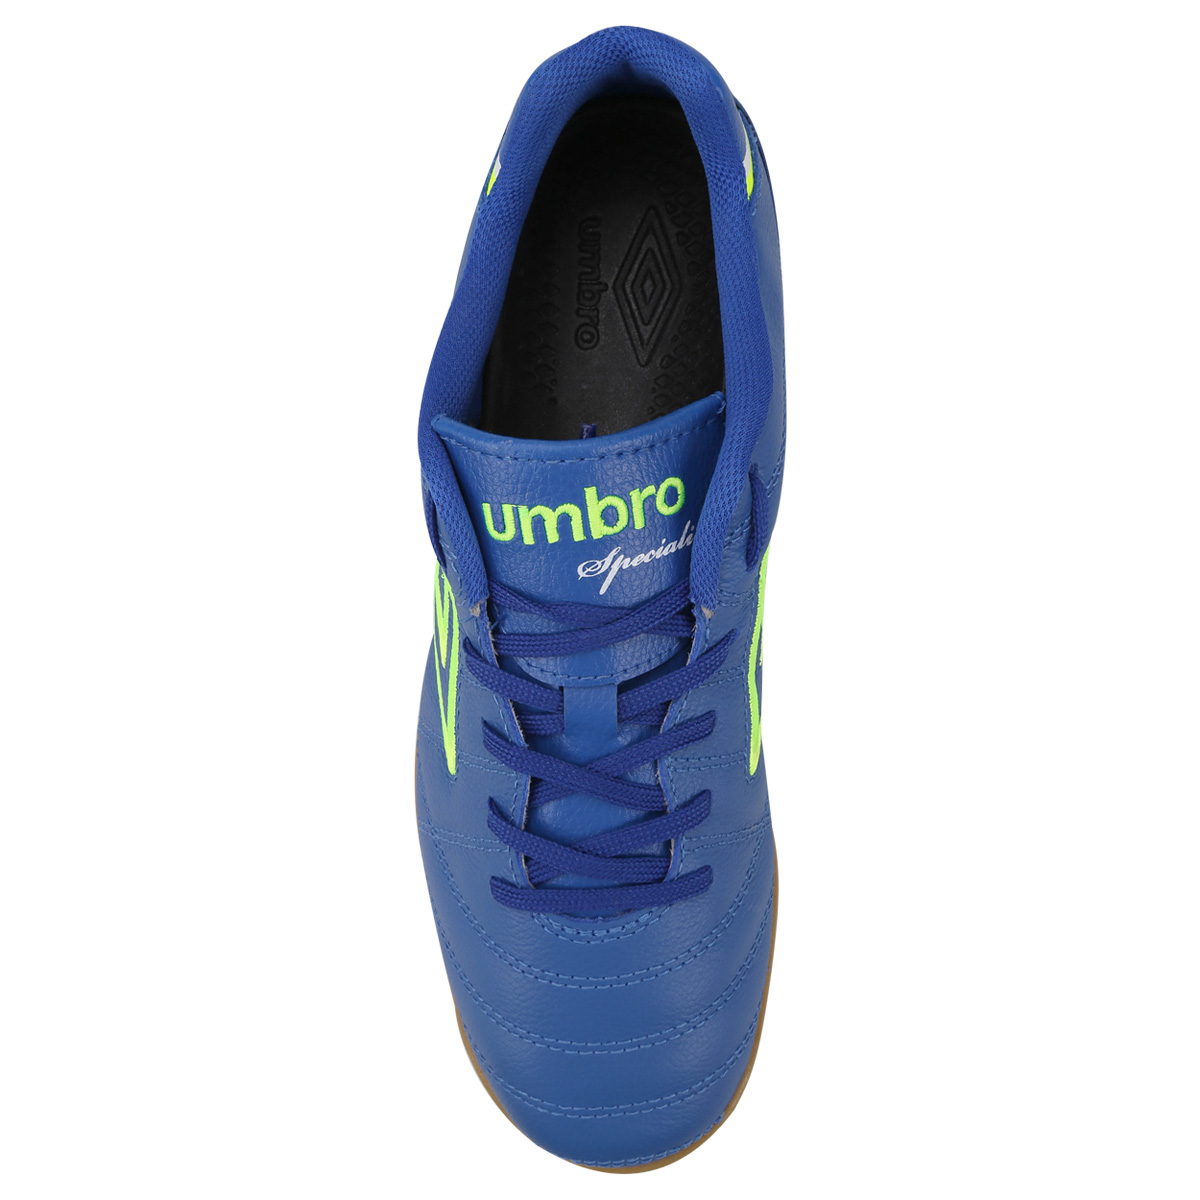 Tenis Umbro Indoor Speciali Premier  - Dozze Shoes